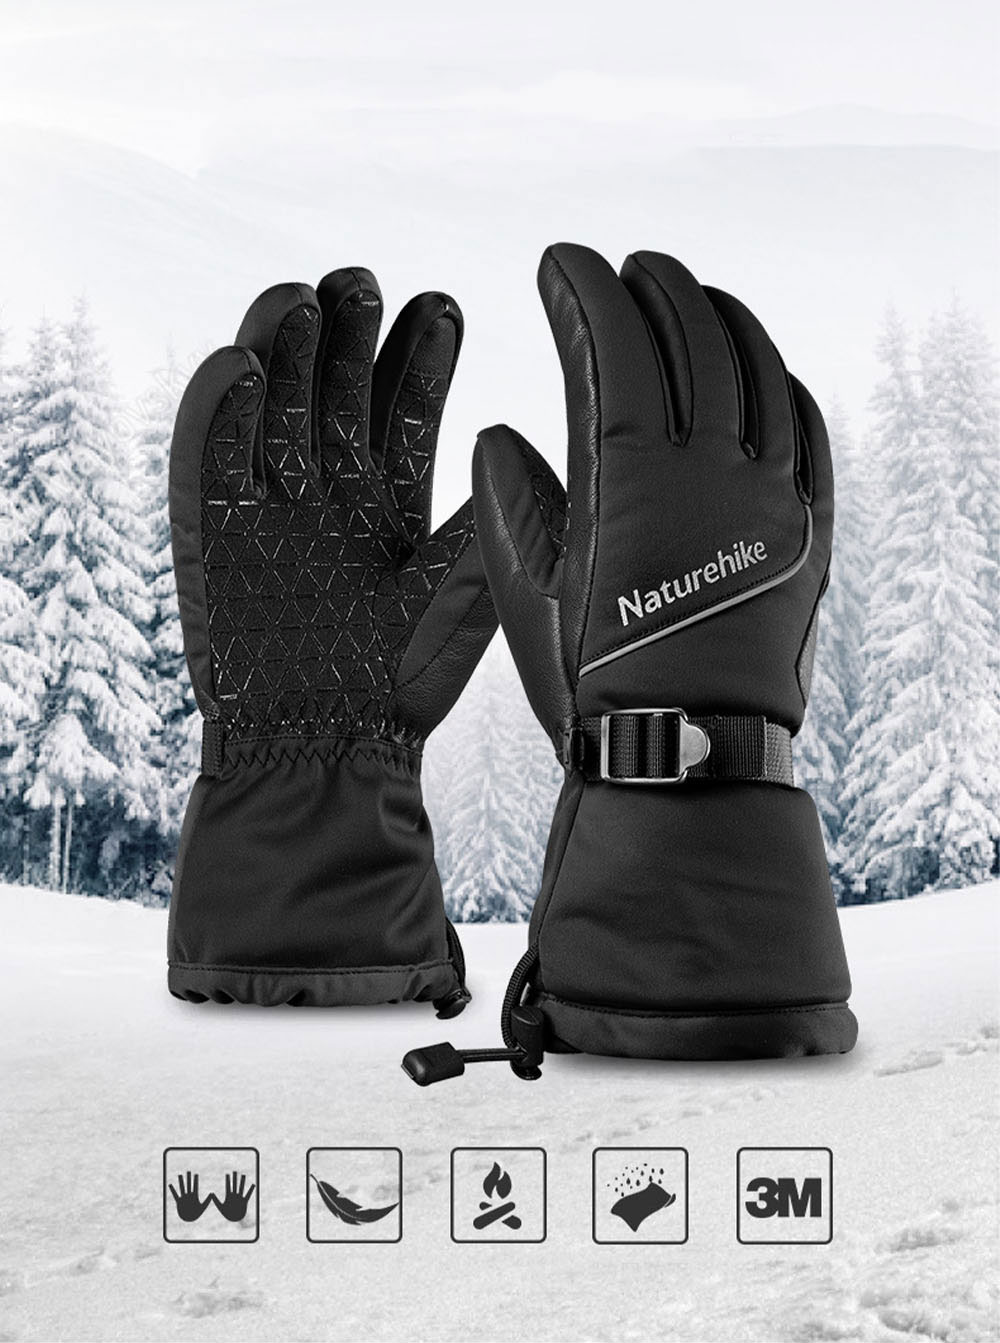 Naturehike Wind-proof Water-proof Velvet Thickening Skiing Gloves for Outdoor  Warm Insulation Winter Thermal Hand Protection Sport Gloves 1